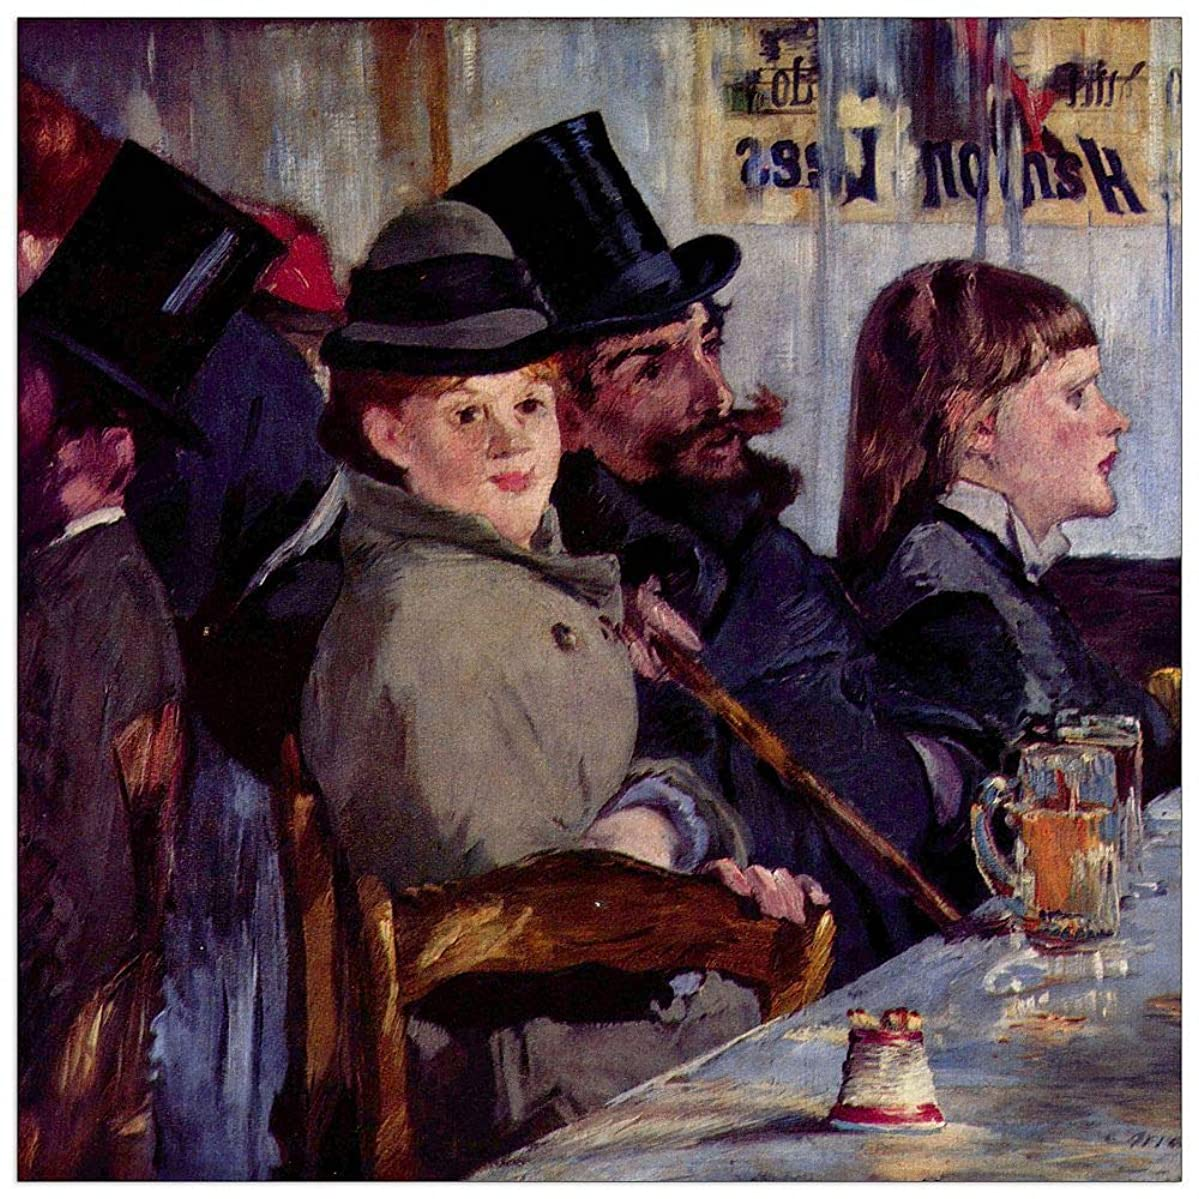 ArtPlaza TW92219 Manet ?douard-Cabaret in Reichshoffen Decorative Panel 43.5x43.5 Inch Multicolored